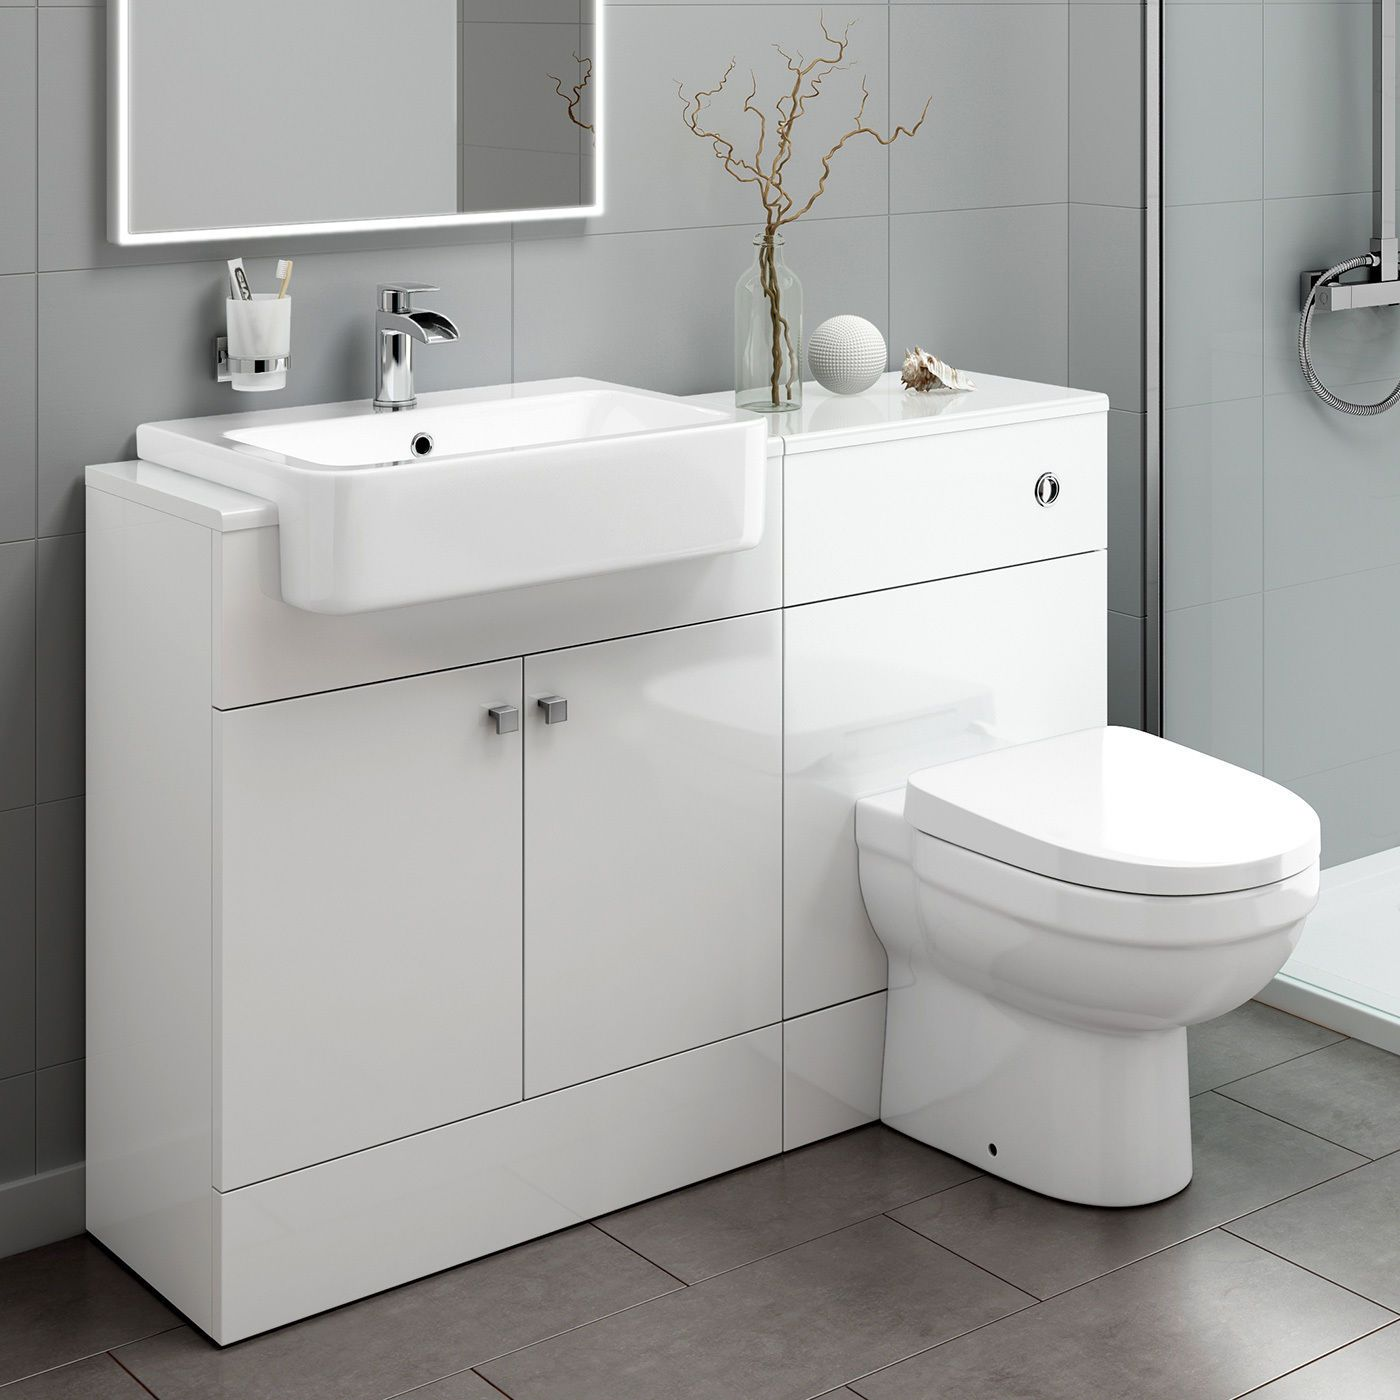 contemporary bathroom sink units 1160mm white bathroom vanity unit sink and toilet 17849